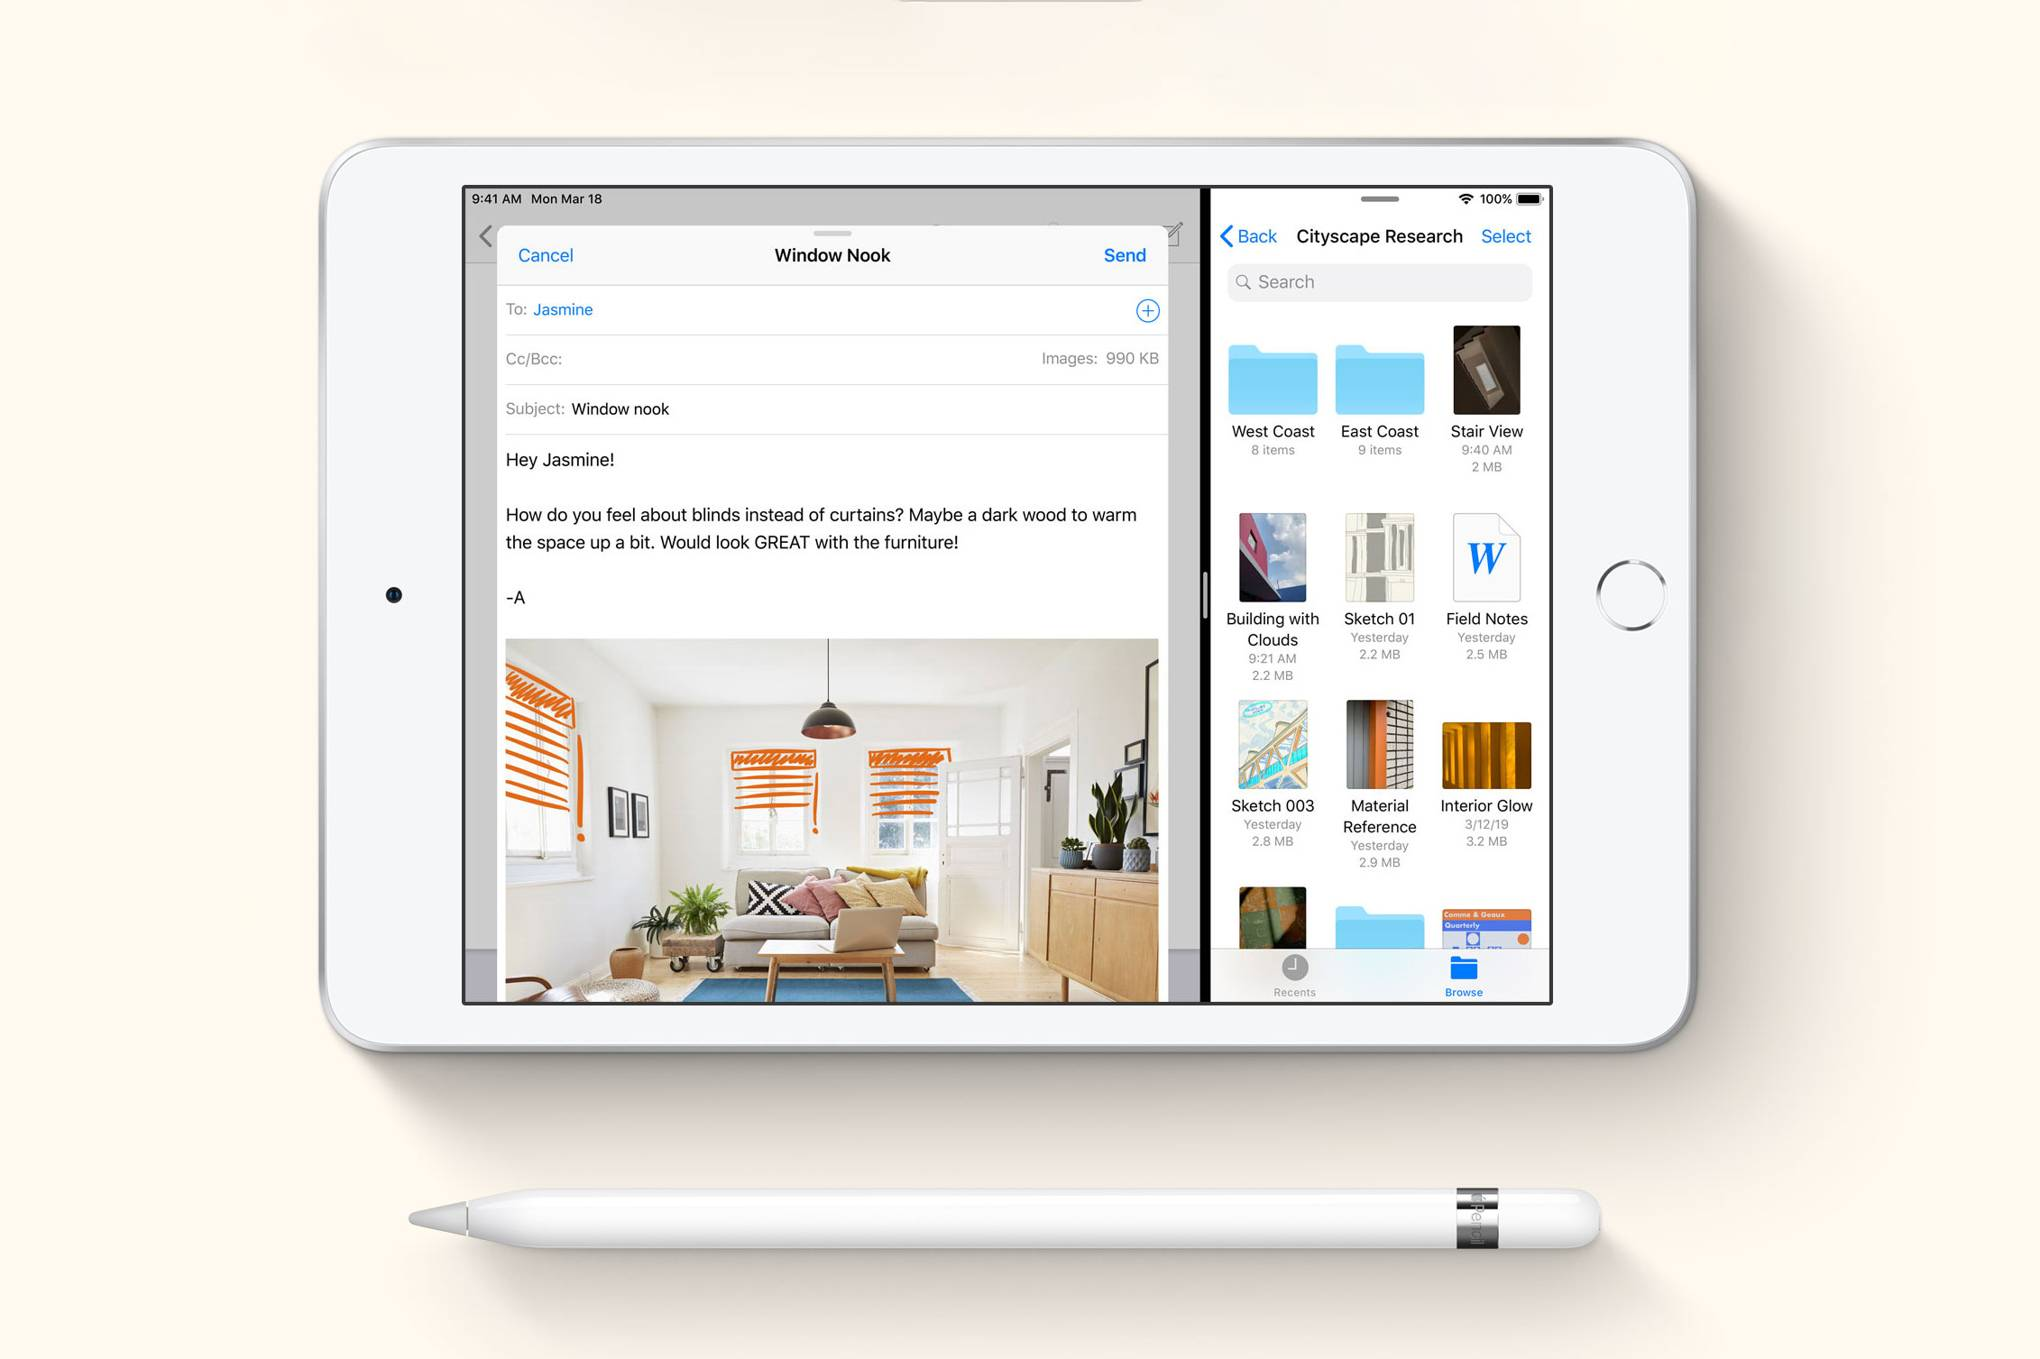 Apple's new iPad Air and iPad mini make space for its